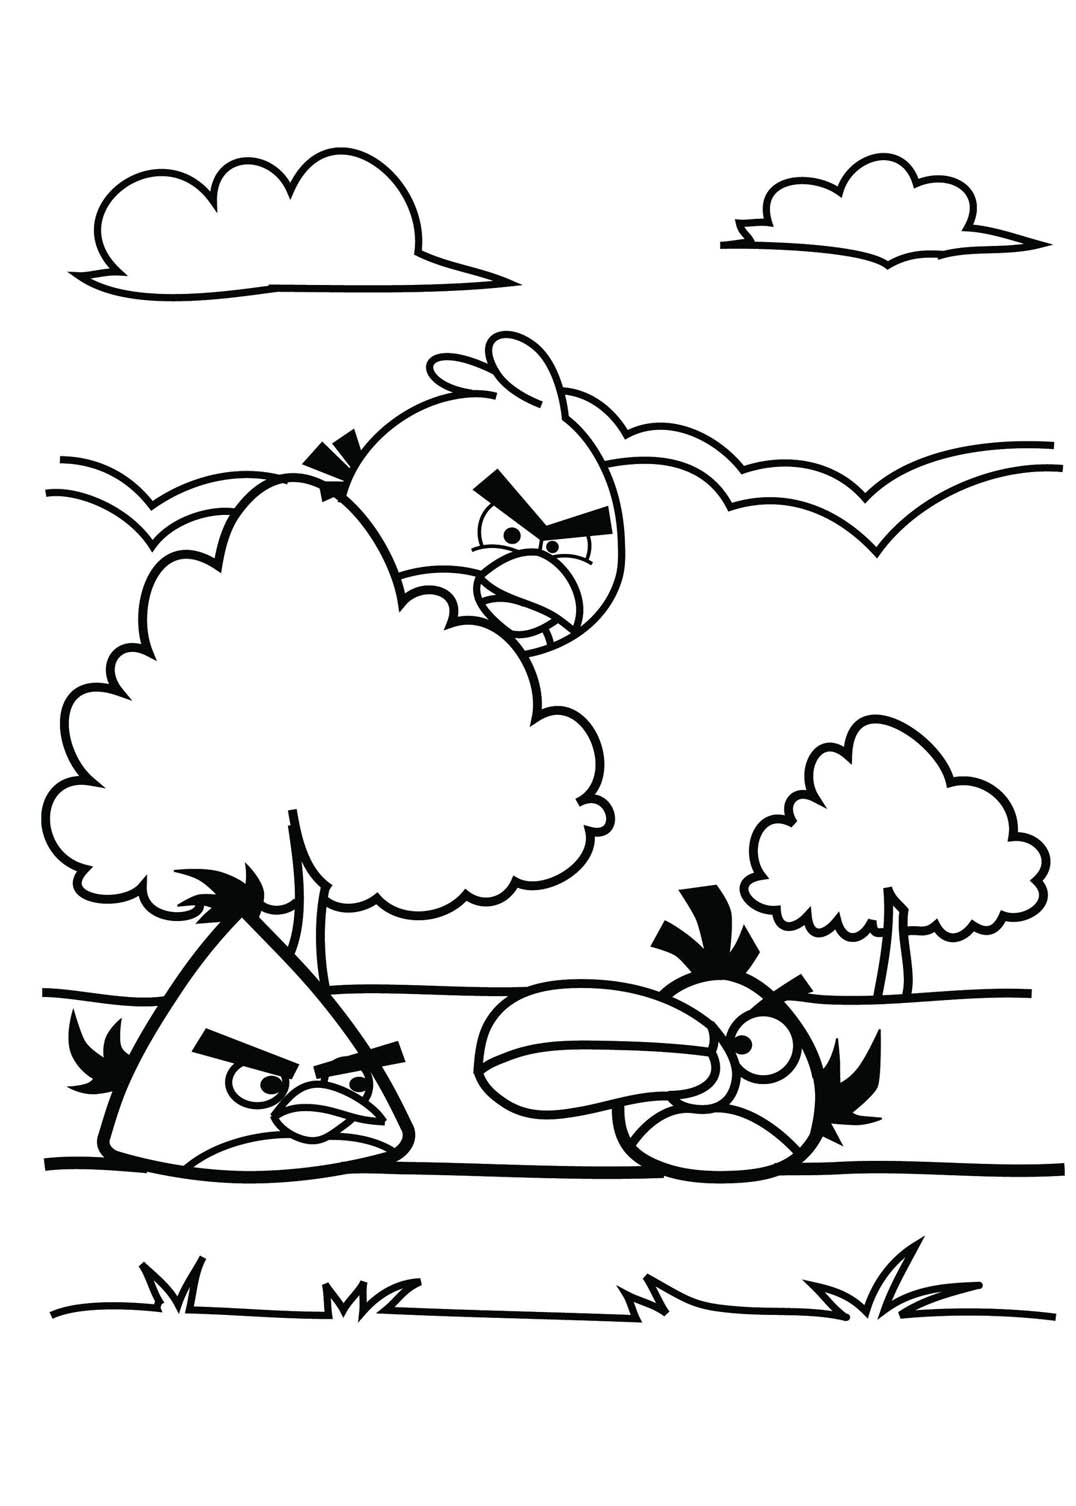 coloring pages for kids birds angry birds for children angry birds kids coloring pages coloring for birds pages kids